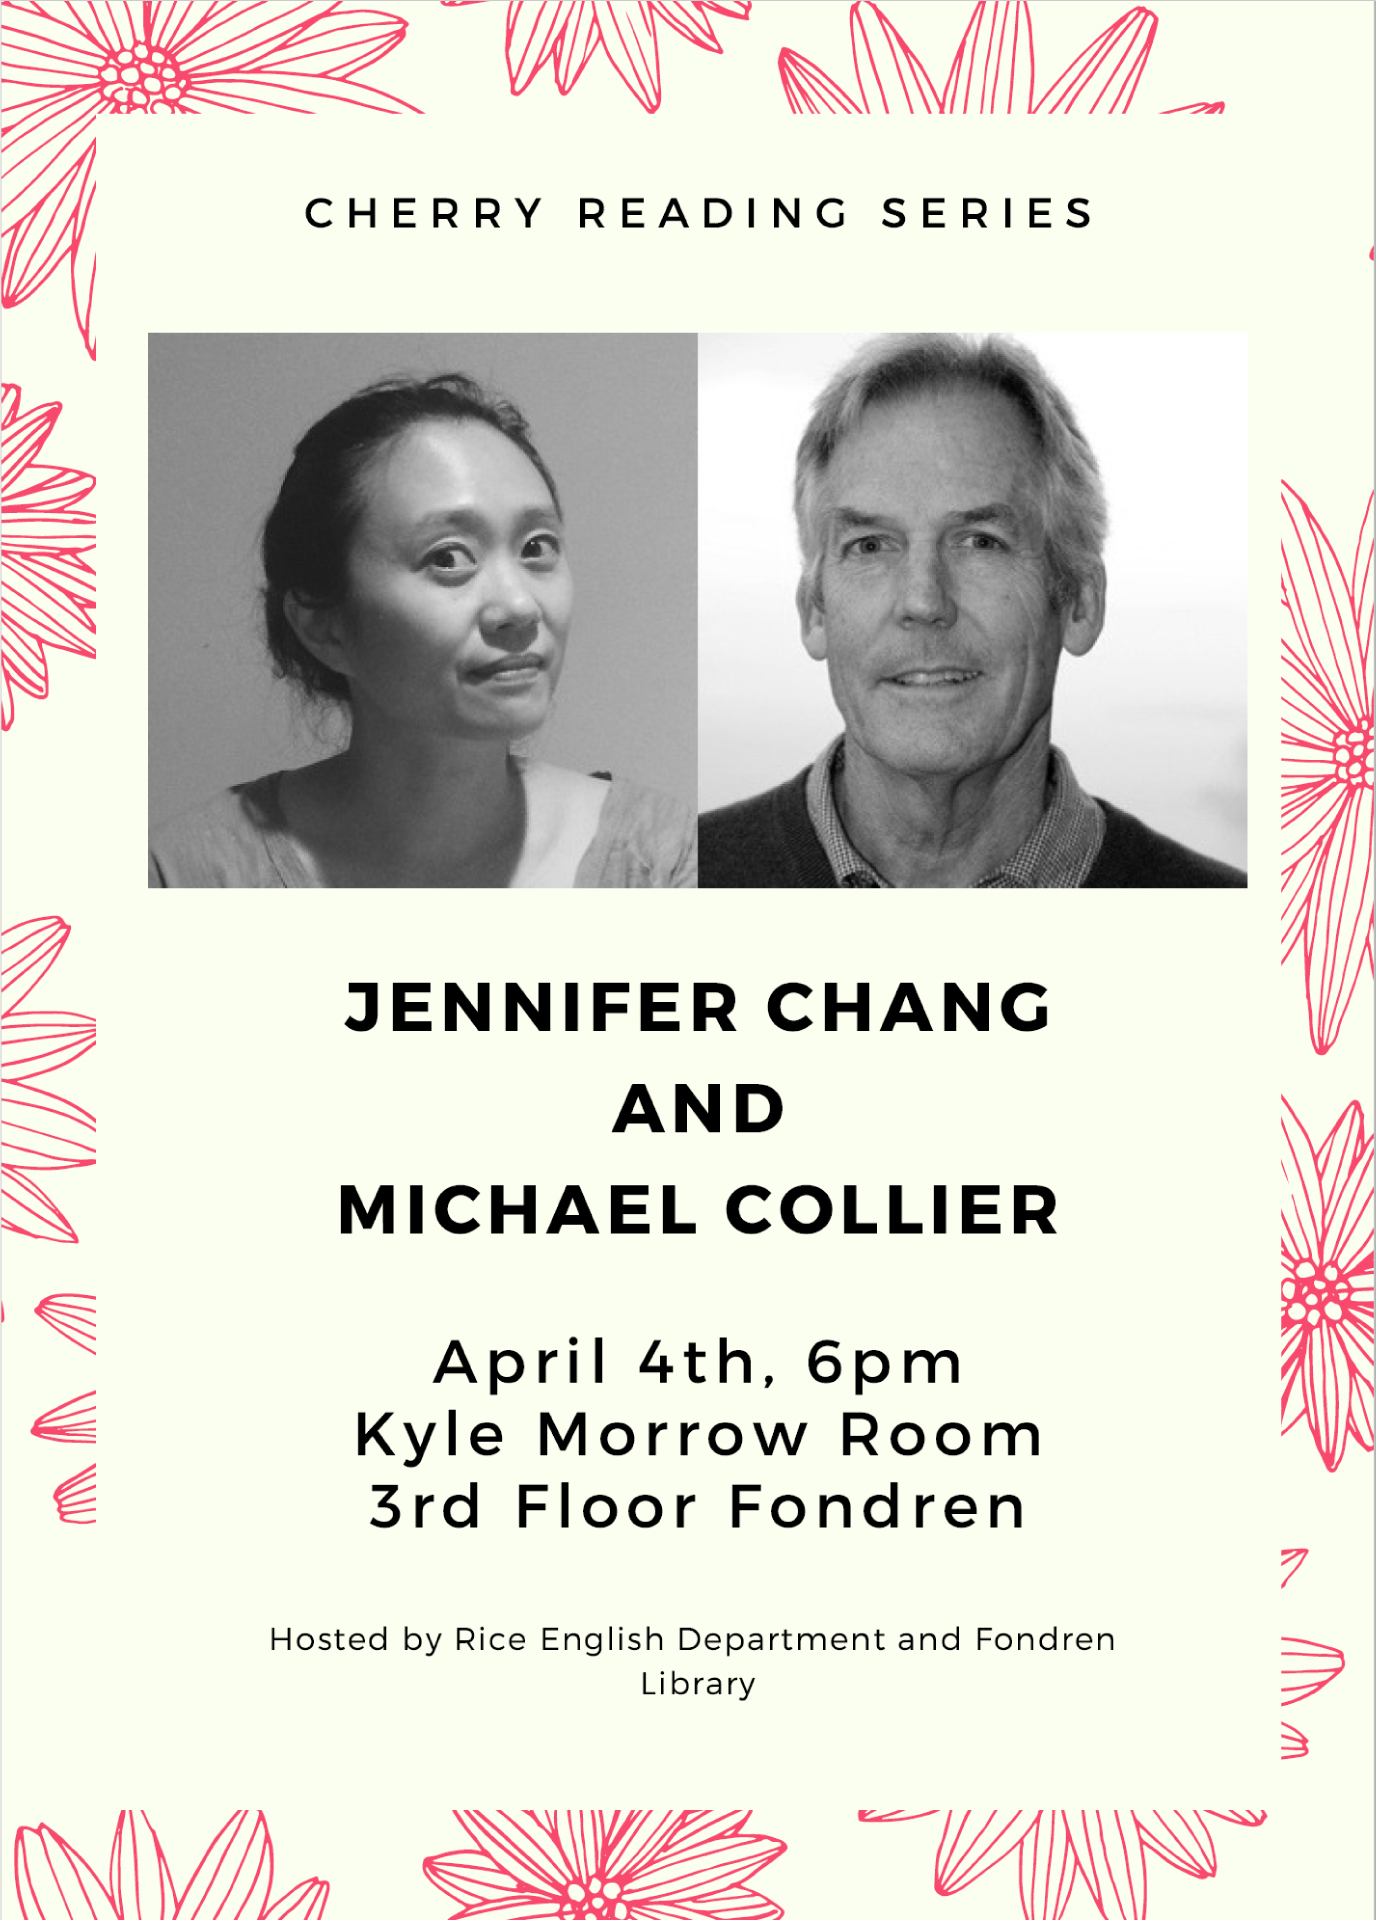 Cherry Reading Series - Chang and Collier